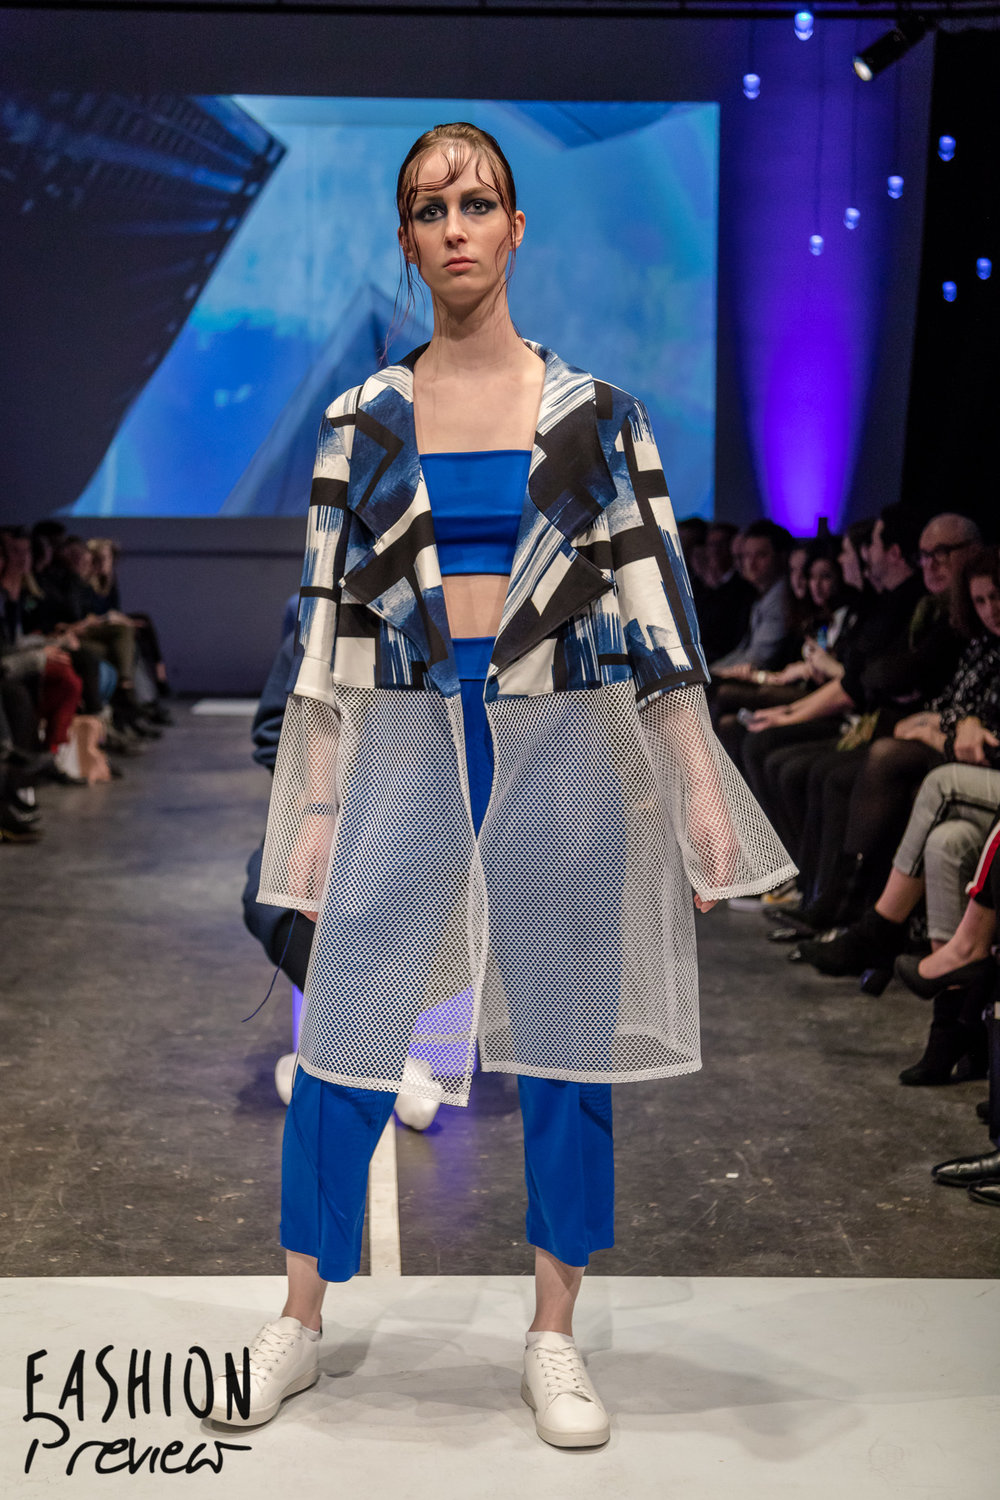 Fashion Preview 9 - Cegep Marie Victorin-08.jpg